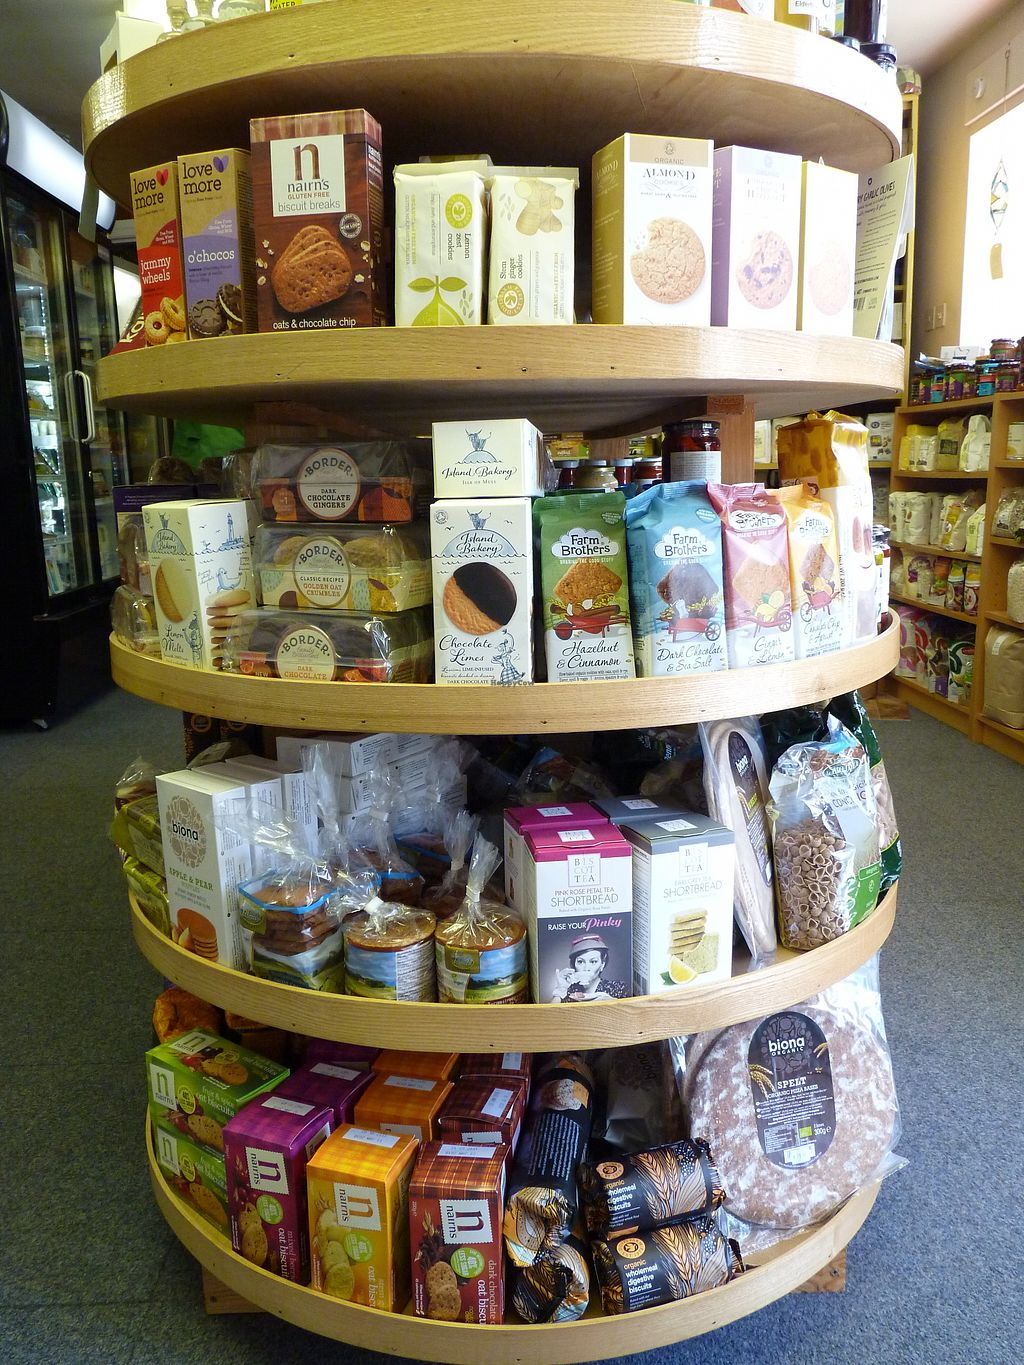 """Photo of Dyfi Wholefoods  by <a href=""""/members/profile/DyfiWholefoods"""">DyfiWholefoods</a> <br/>A range of delicious biscuits <br/> February 16, 2018  - <a href='/contact/abuse/image/39329/360024'>Report</a>"""